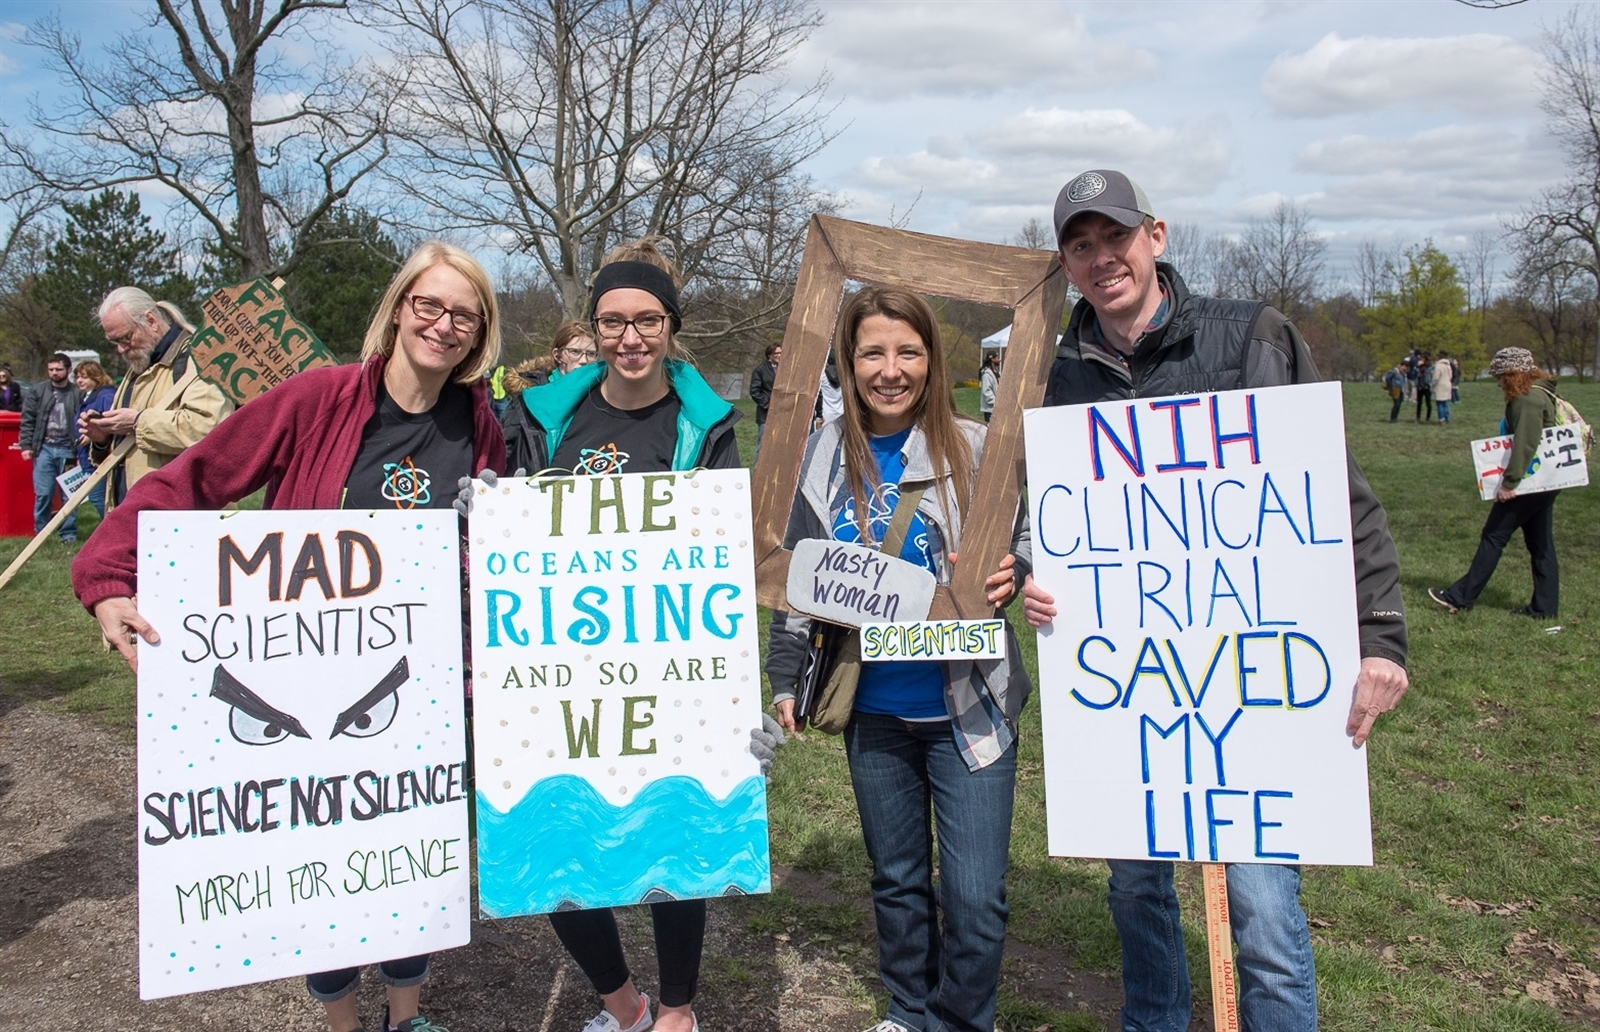 Four different messages from this group of marchers. The sign on the left is a call for action, the second from the left colorfully draws attention to global warming, the third echoes a slogan for female empowerment from the 2016 presidential election, while the final is a powerful personal message.